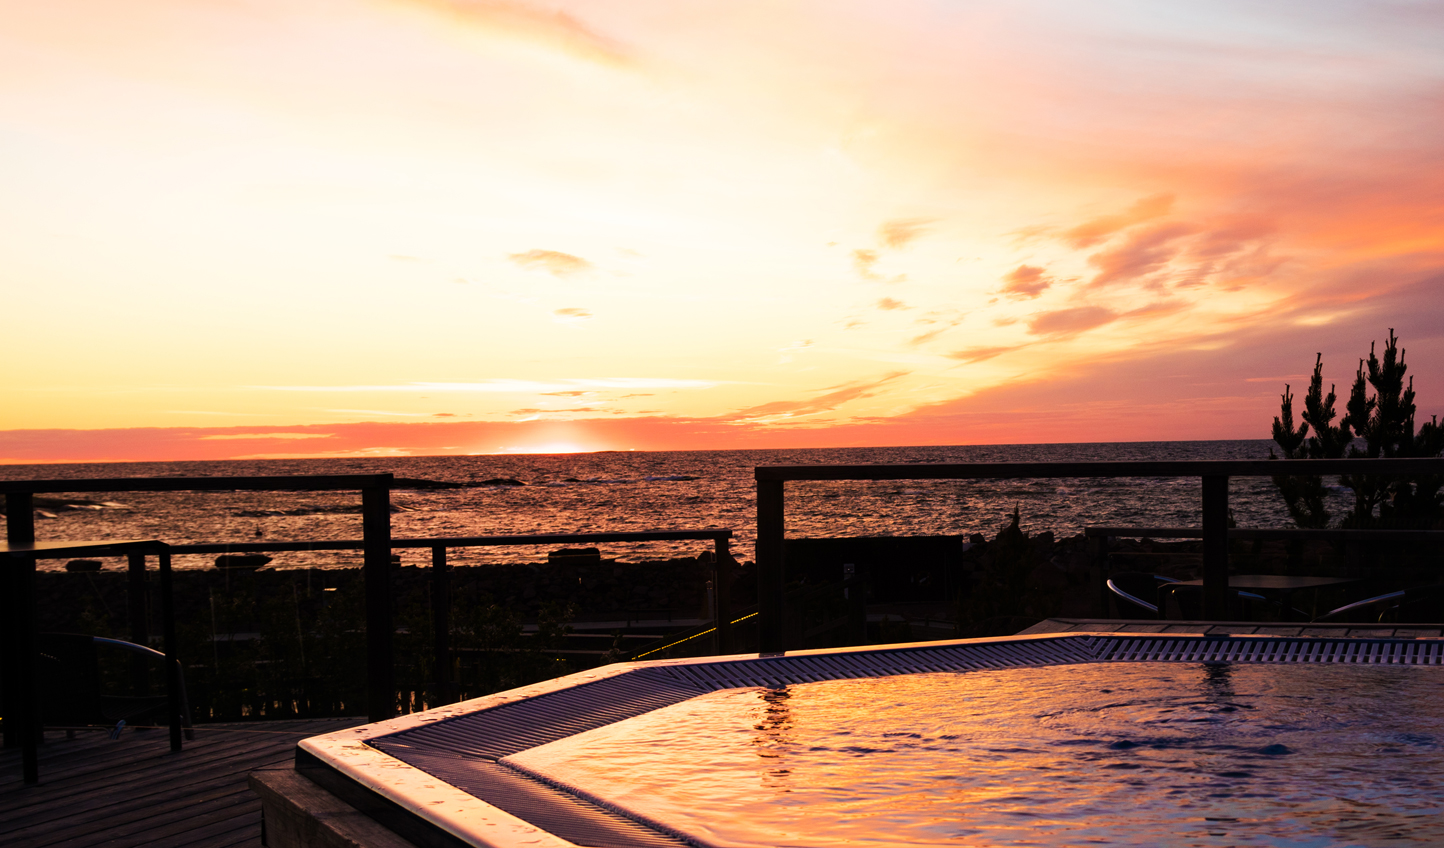 Watch the sunset from the comfort of your jacuzzi